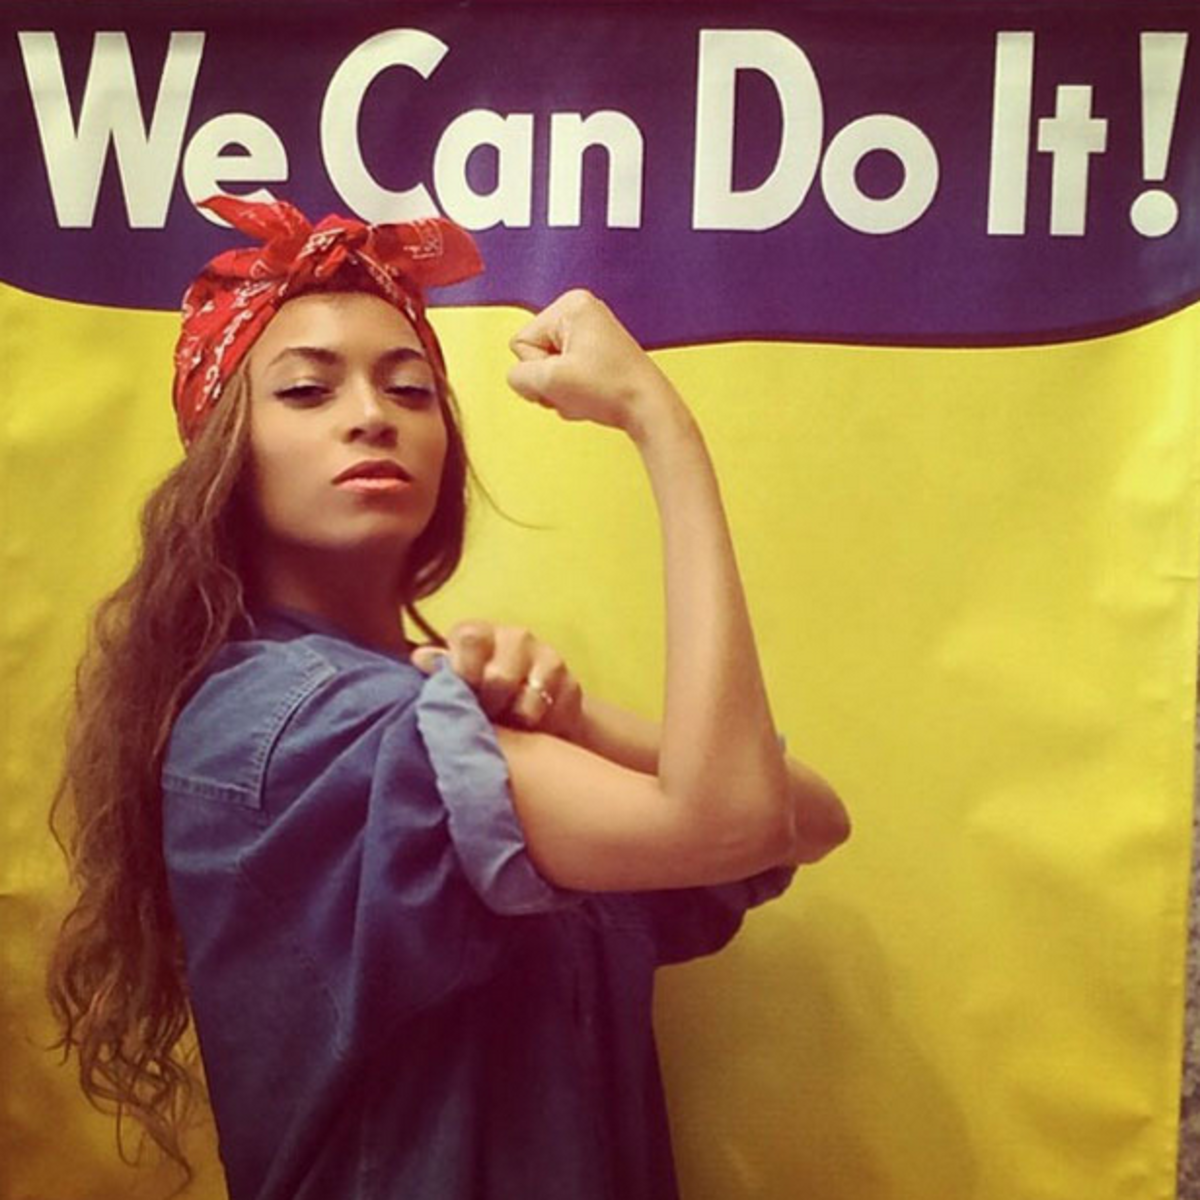 Beyonce, in a Rosie the Riveter homage she tweeted to fans.